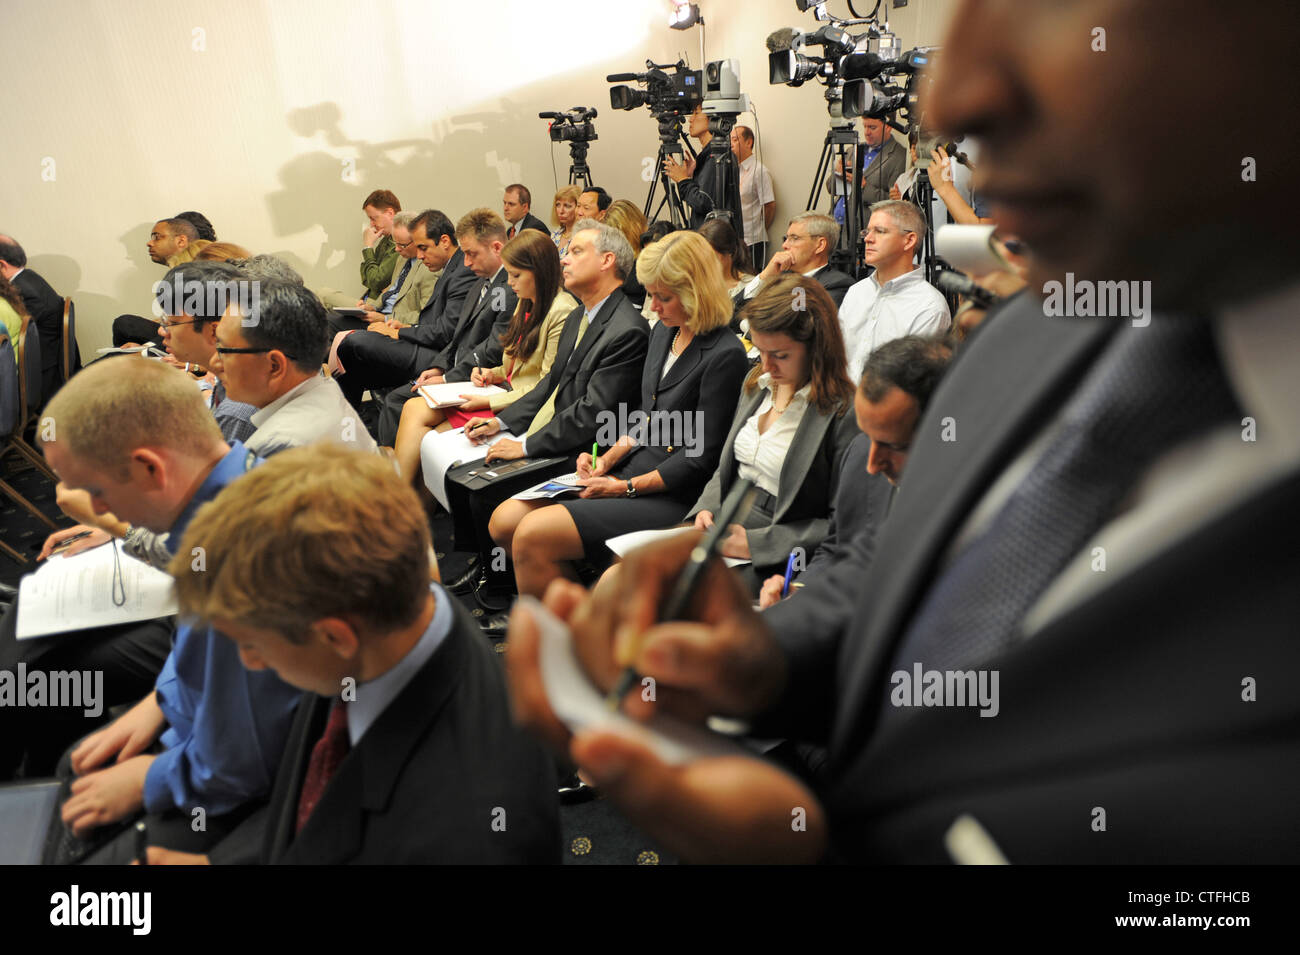 small-press-conference-usa-media-print-a